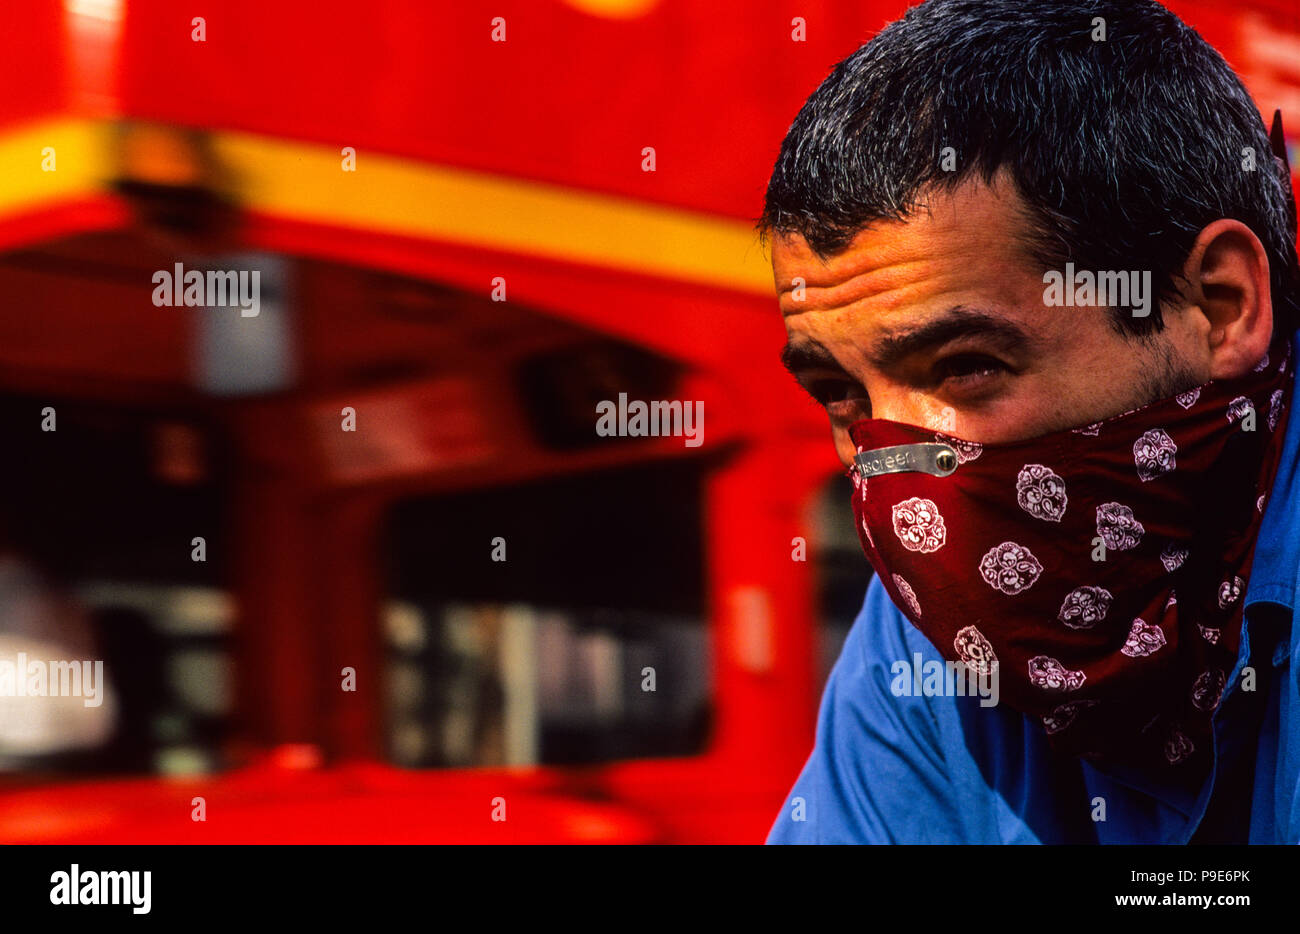 Cyclist in Face Mask, Cycling in Heavy Traffic, London, UK, GB. - Stock Image